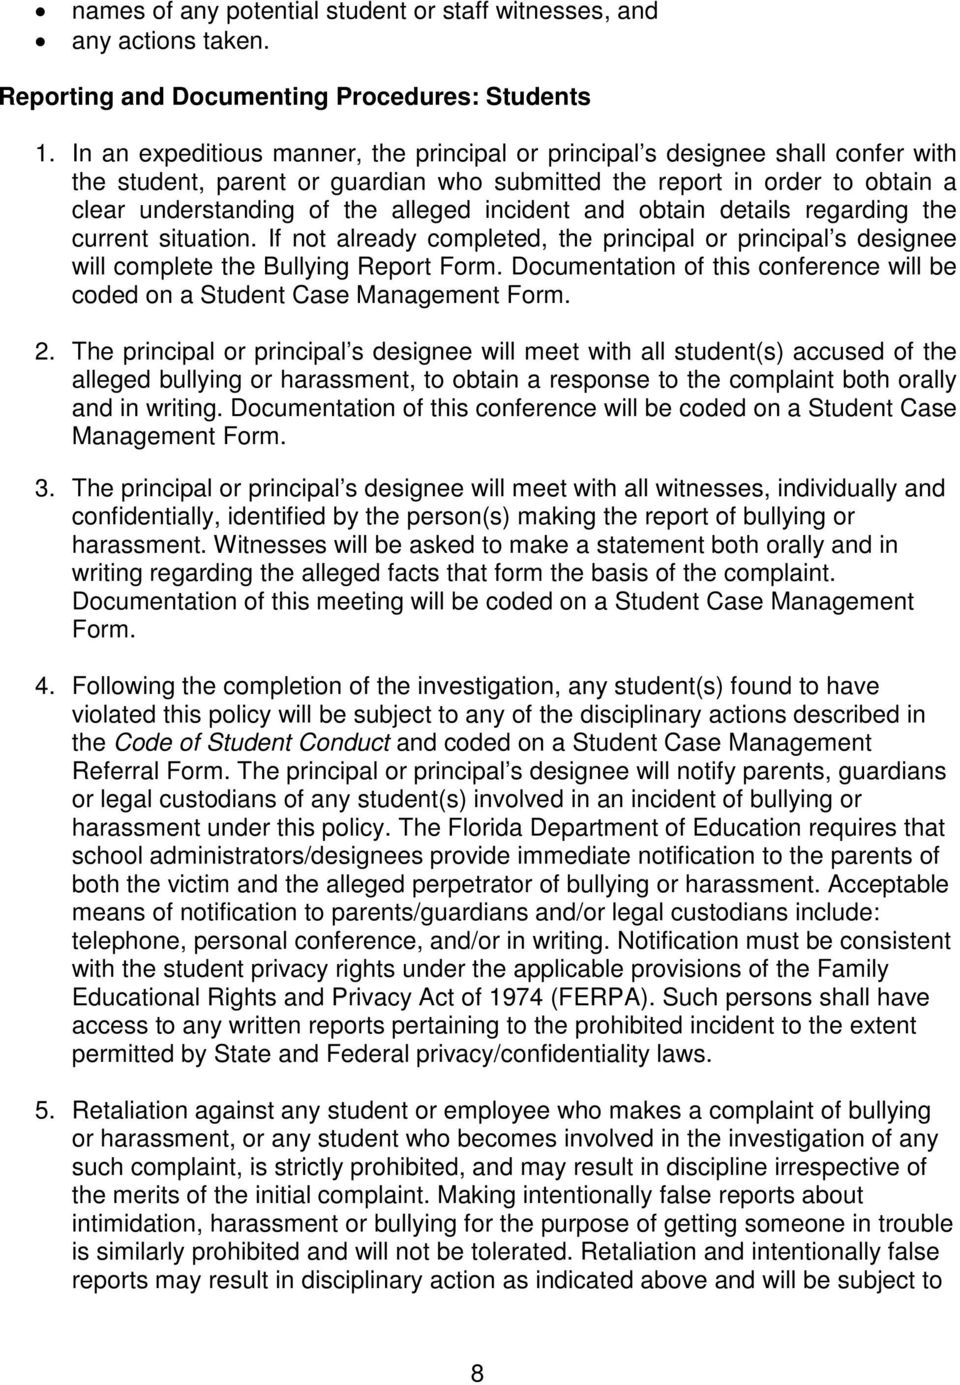 incident and obtain details regarding the current situation. If not already completed, the principal or principal s designee will complete the Bullying Report Form.